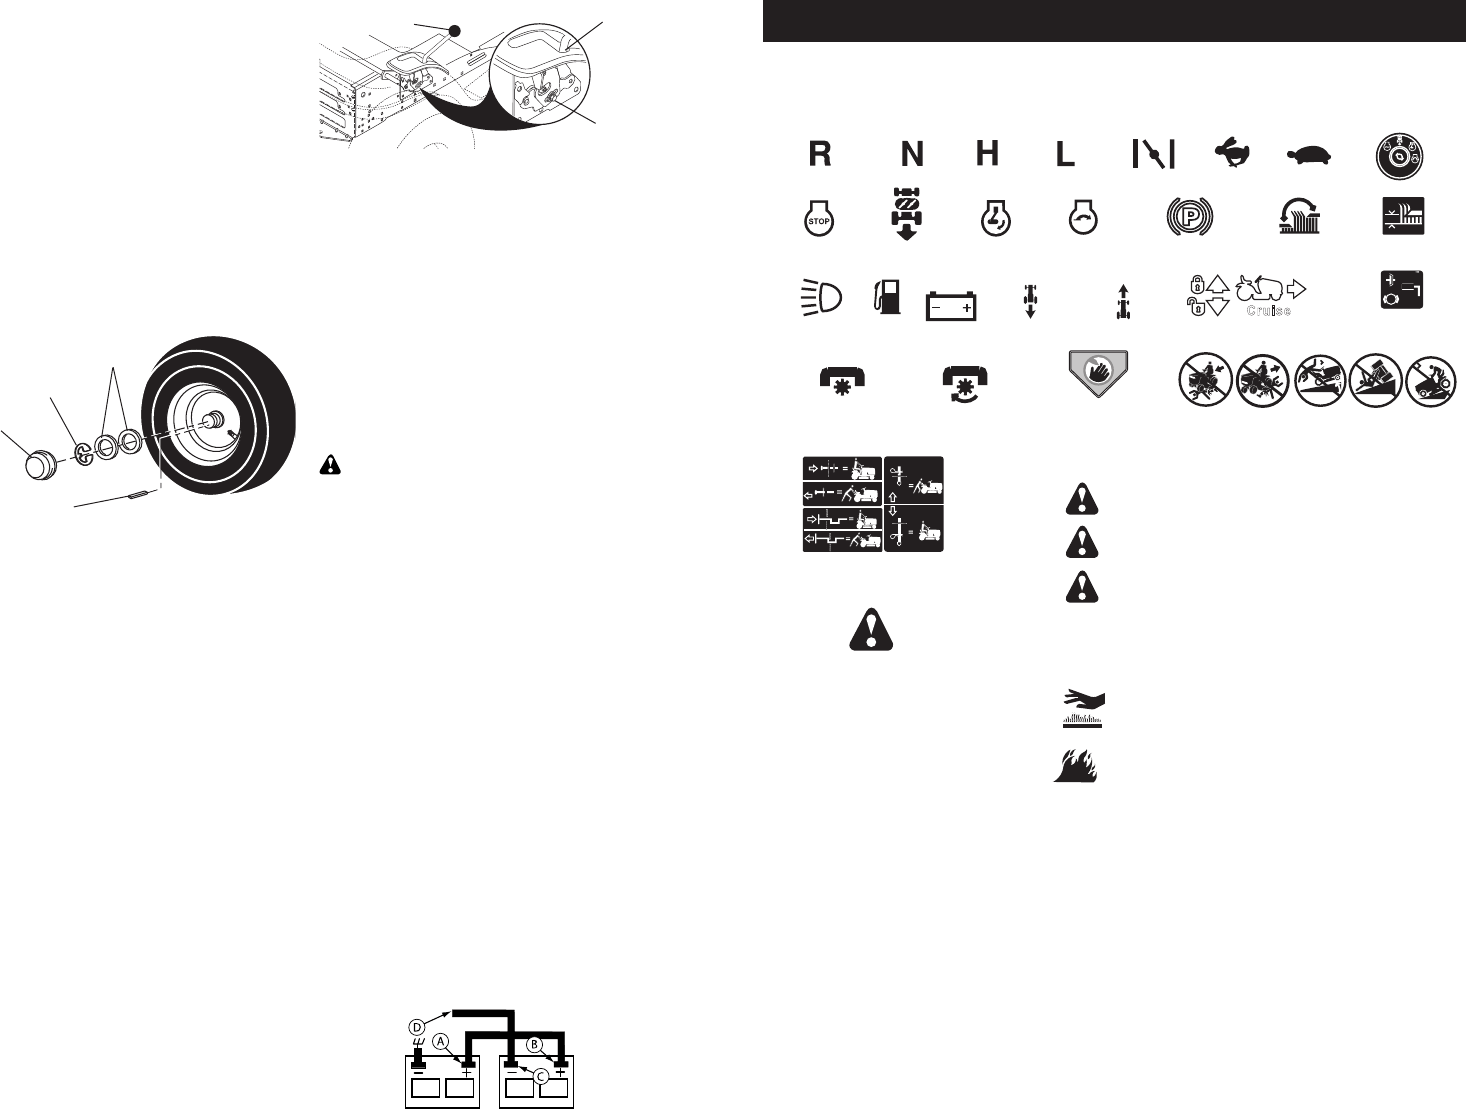 Page 9 of Craftsman Lawn Mower 917.28851 User Guide